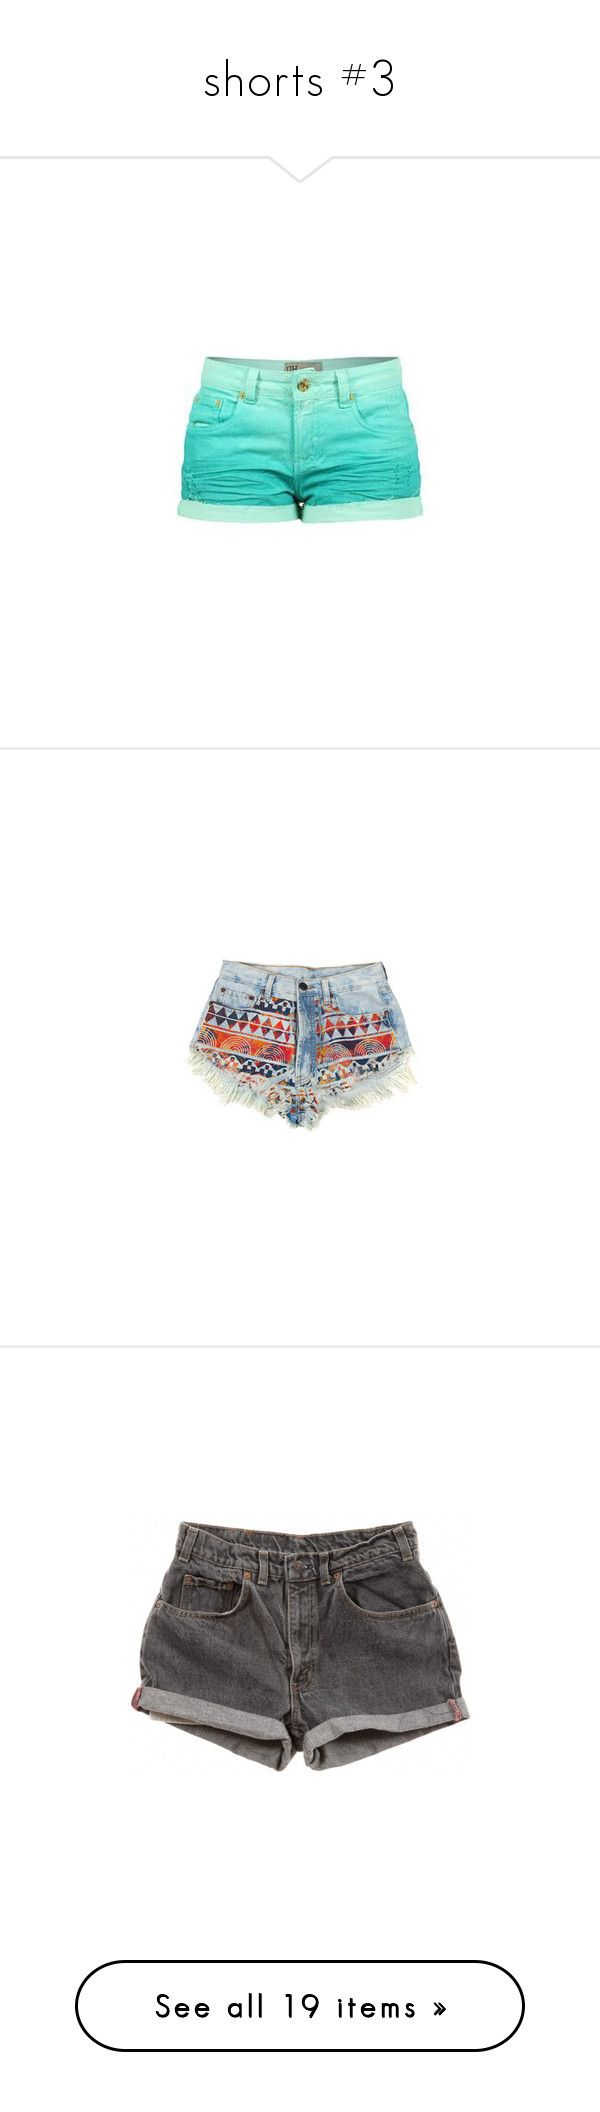 """""""shorts #3"""" by giprevedabr ❤ liked on Polyvore featuring shorts, short shorts, bottoms, pants, summer jean shorts, fringe denim shorts, tribal denim shorts, tribal shorts, denim shorts and short"""